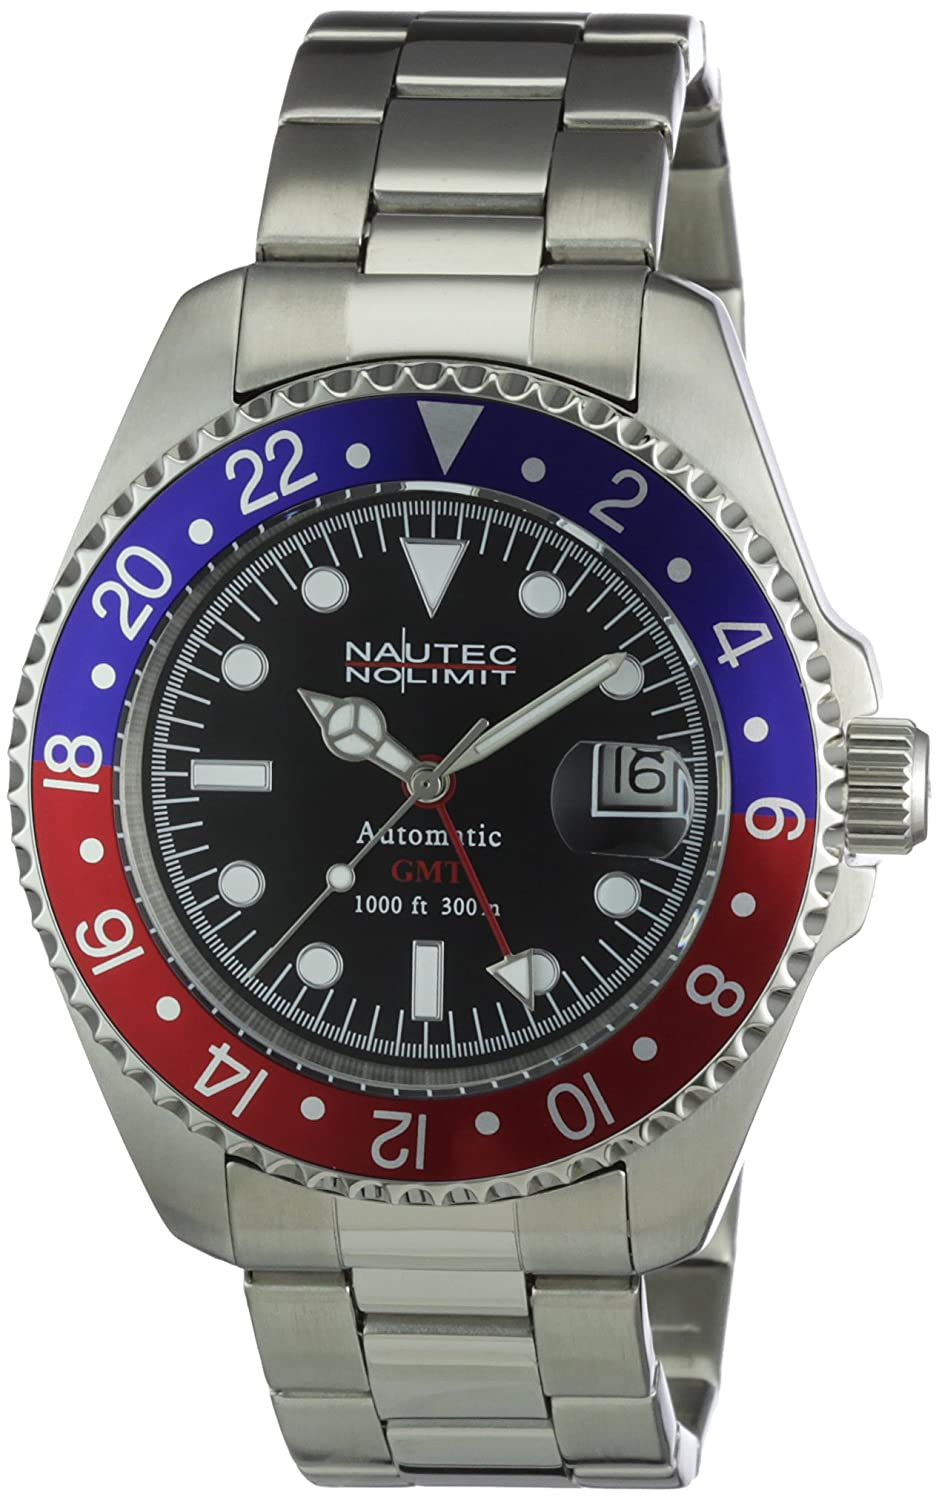 Nautec No Limit Herren-Armbanduhr Deep Sea Analog Automatik DS AT-GMT-STSTRDBLBK